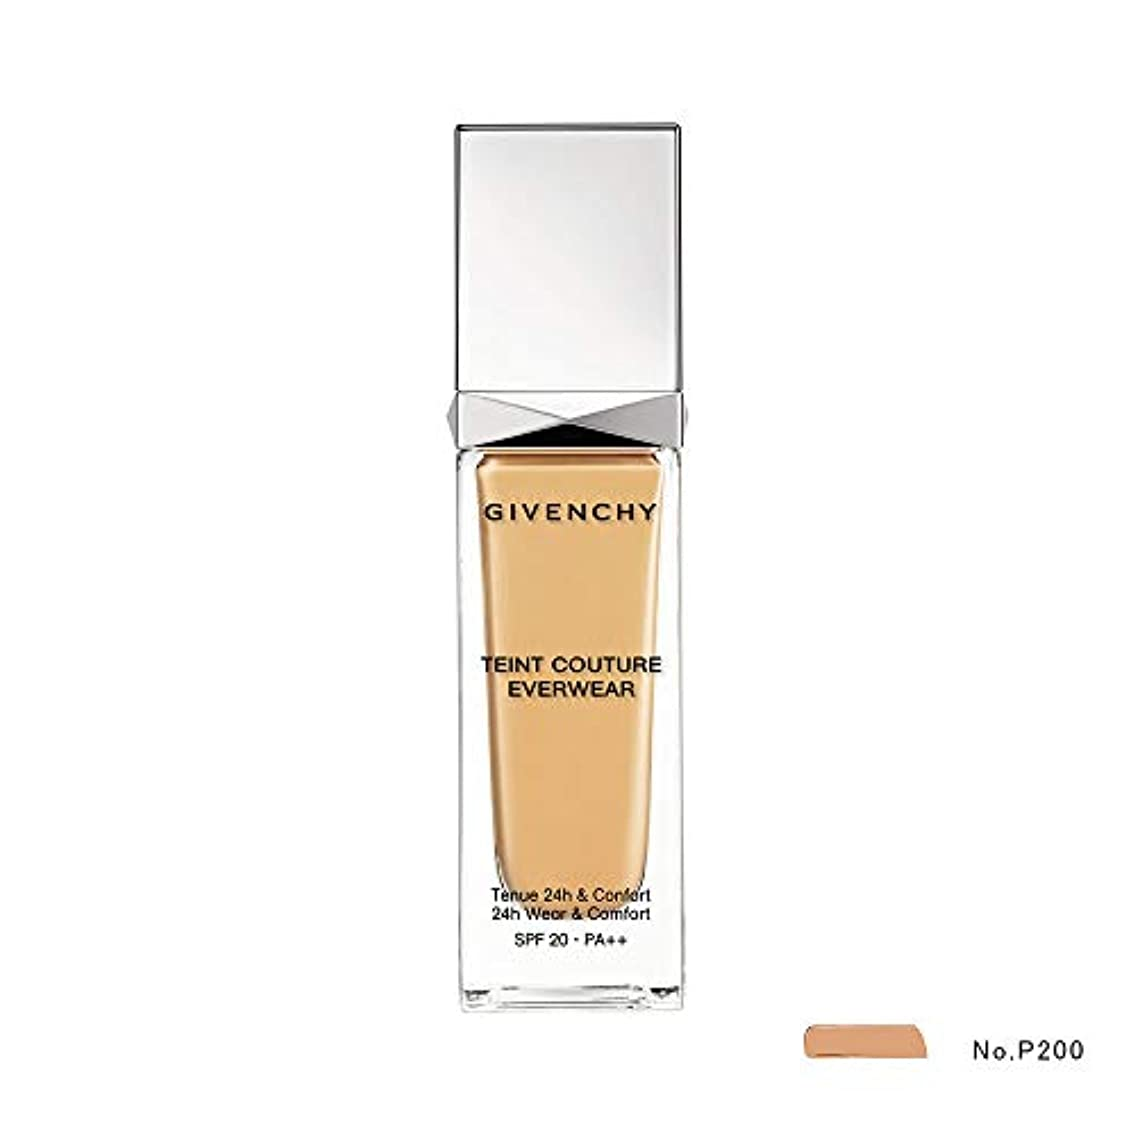 頑丈ワイド早熟ジバンシィ Teint Couture Everwear 24H Wear & Comfort Foundation SPF 20 - # P200 30ml/1oz並行輸入品